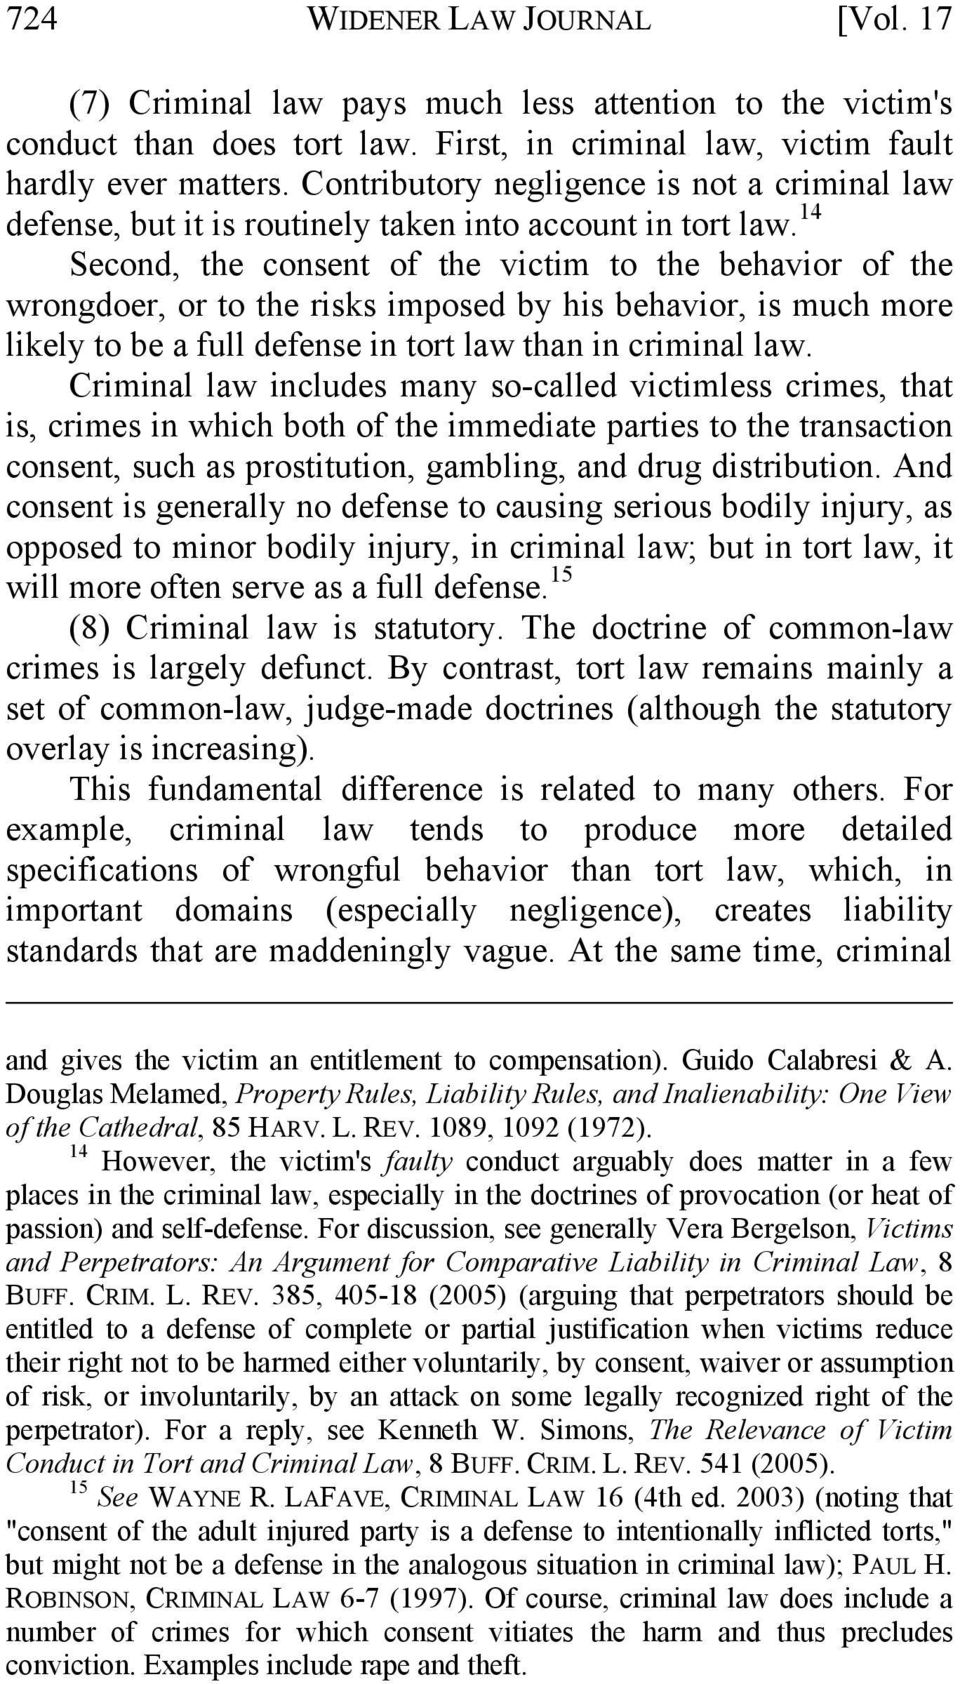 14 Second, the consent of the victim to the behavior of the wrongdoer, or to the risks imposed by his behavior, is much more likely to be a full defense in tort law than in criminal law.